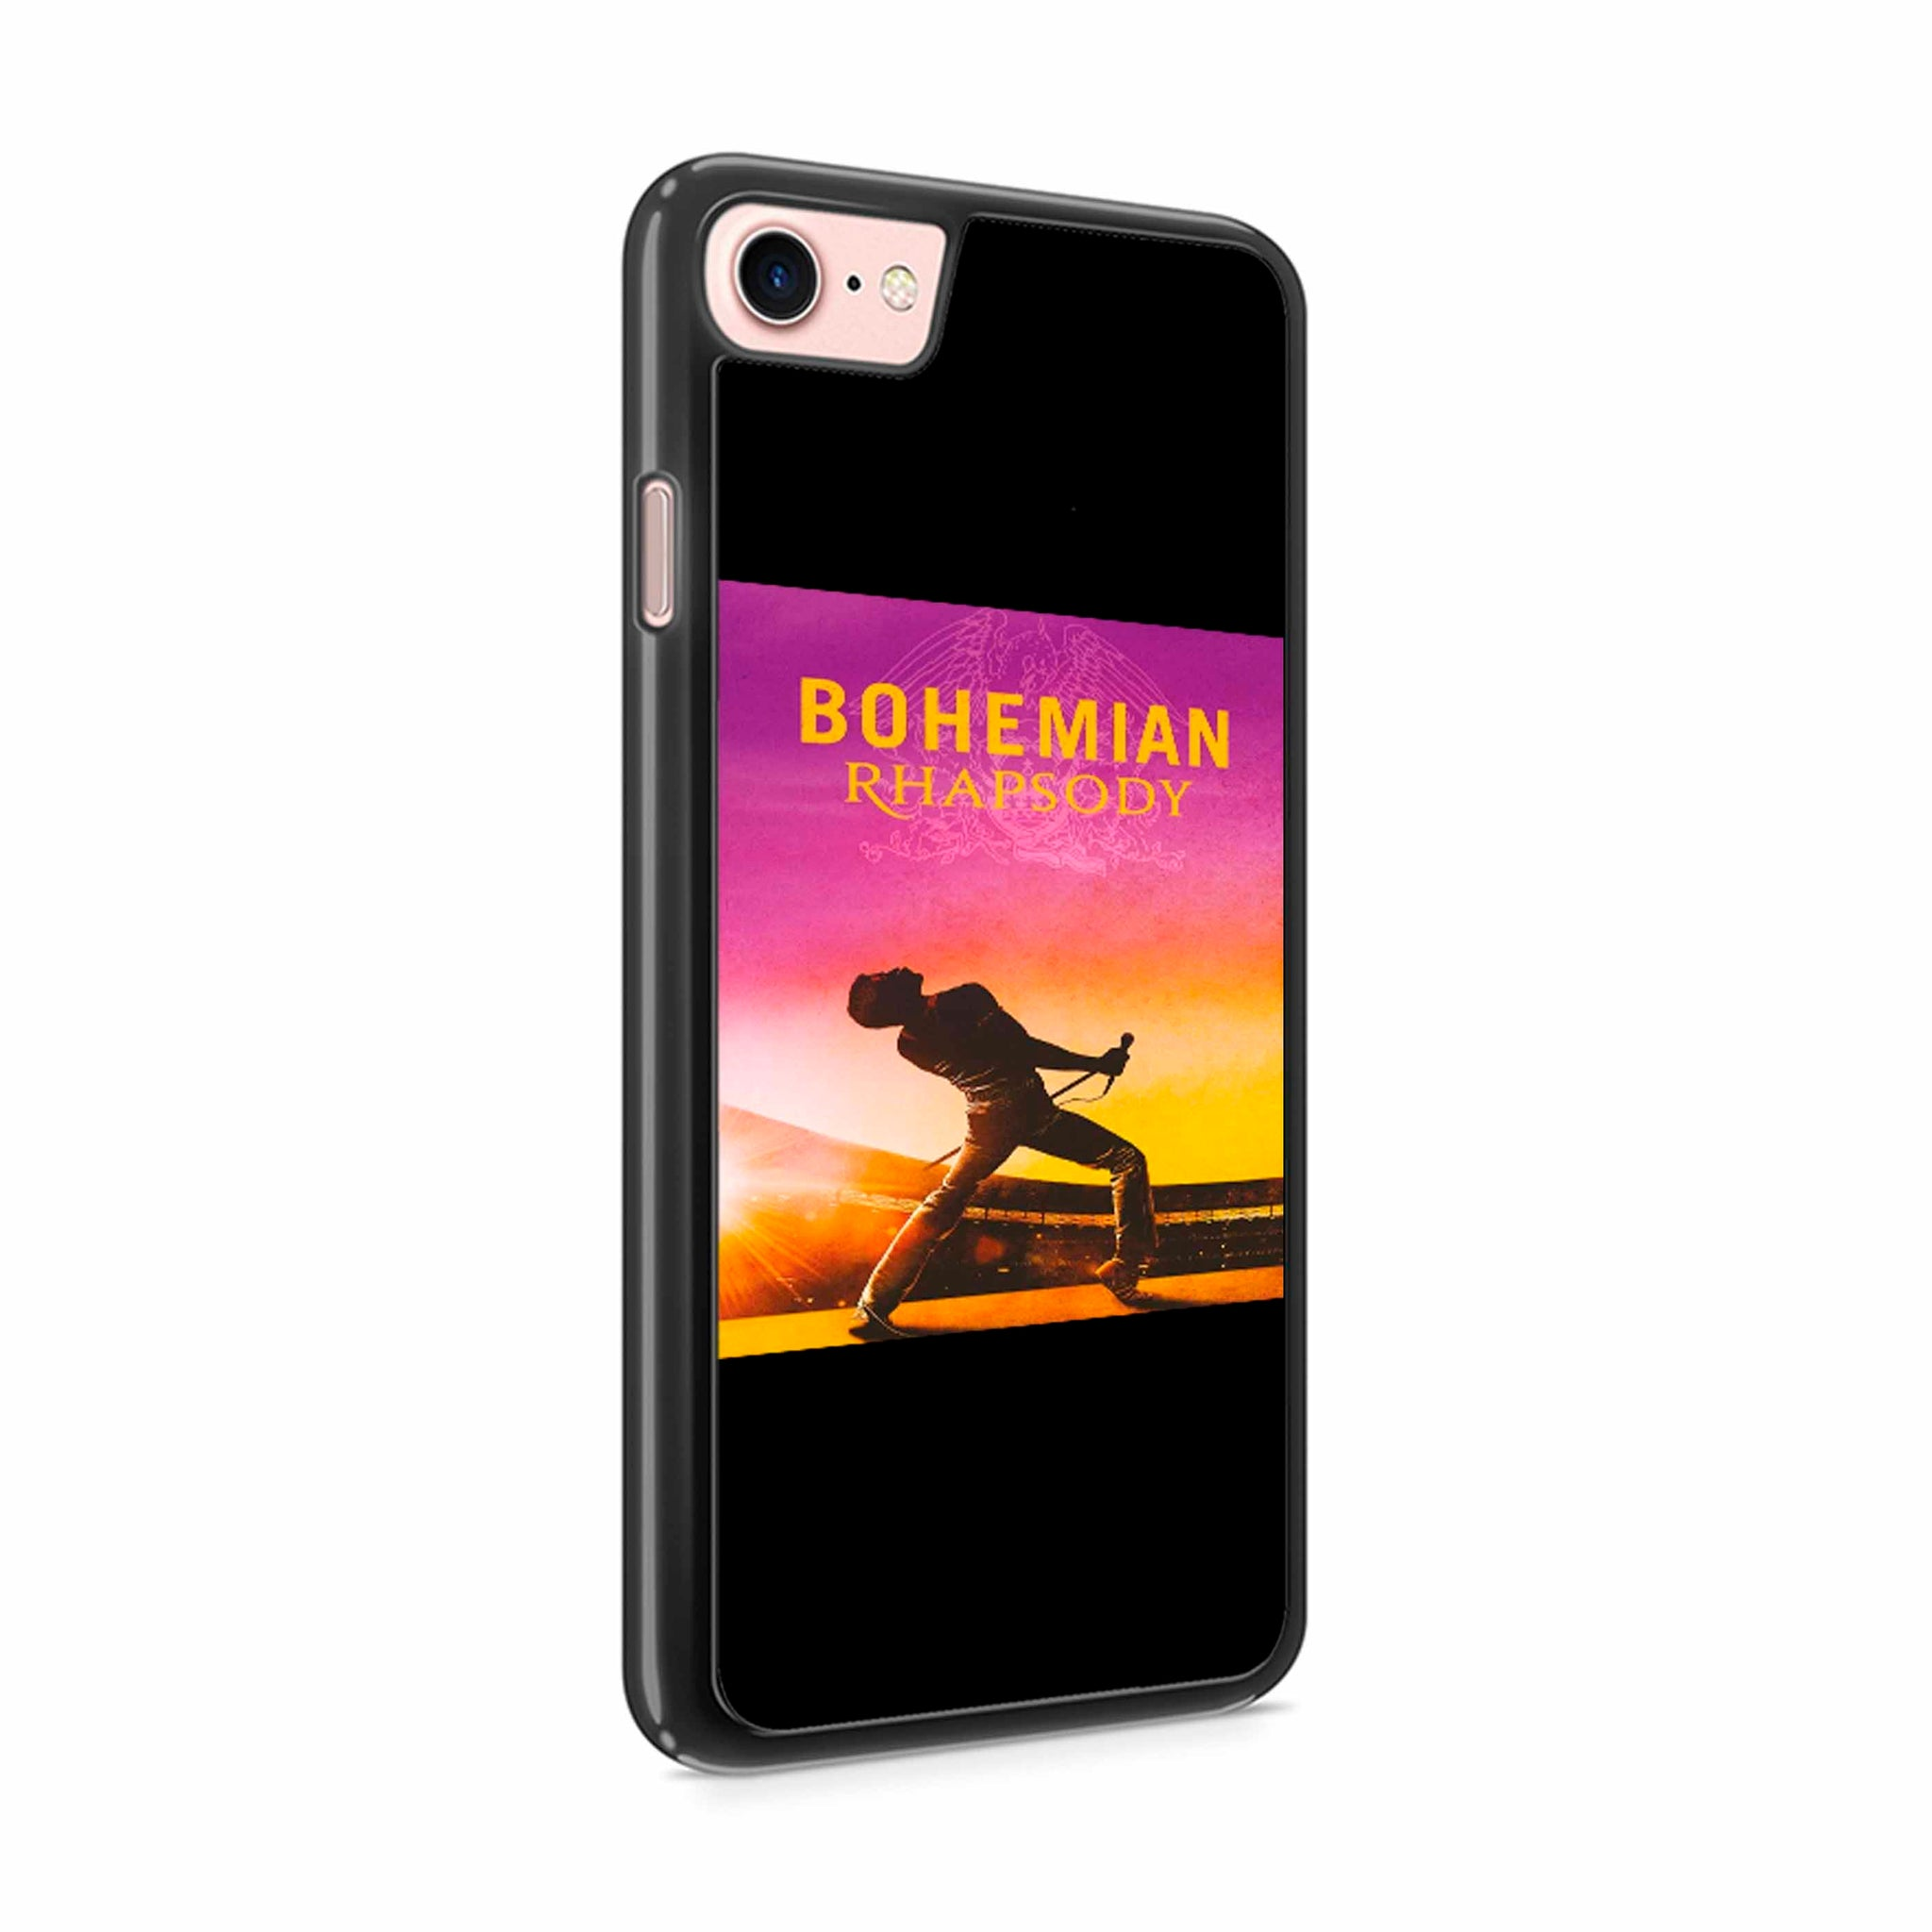 Bohemian Rhapsody Movie Iphone 7 / 7 Plus / 6 / 6s / 6 Plus / 6S Plus / 5 / 5S / 5C Case